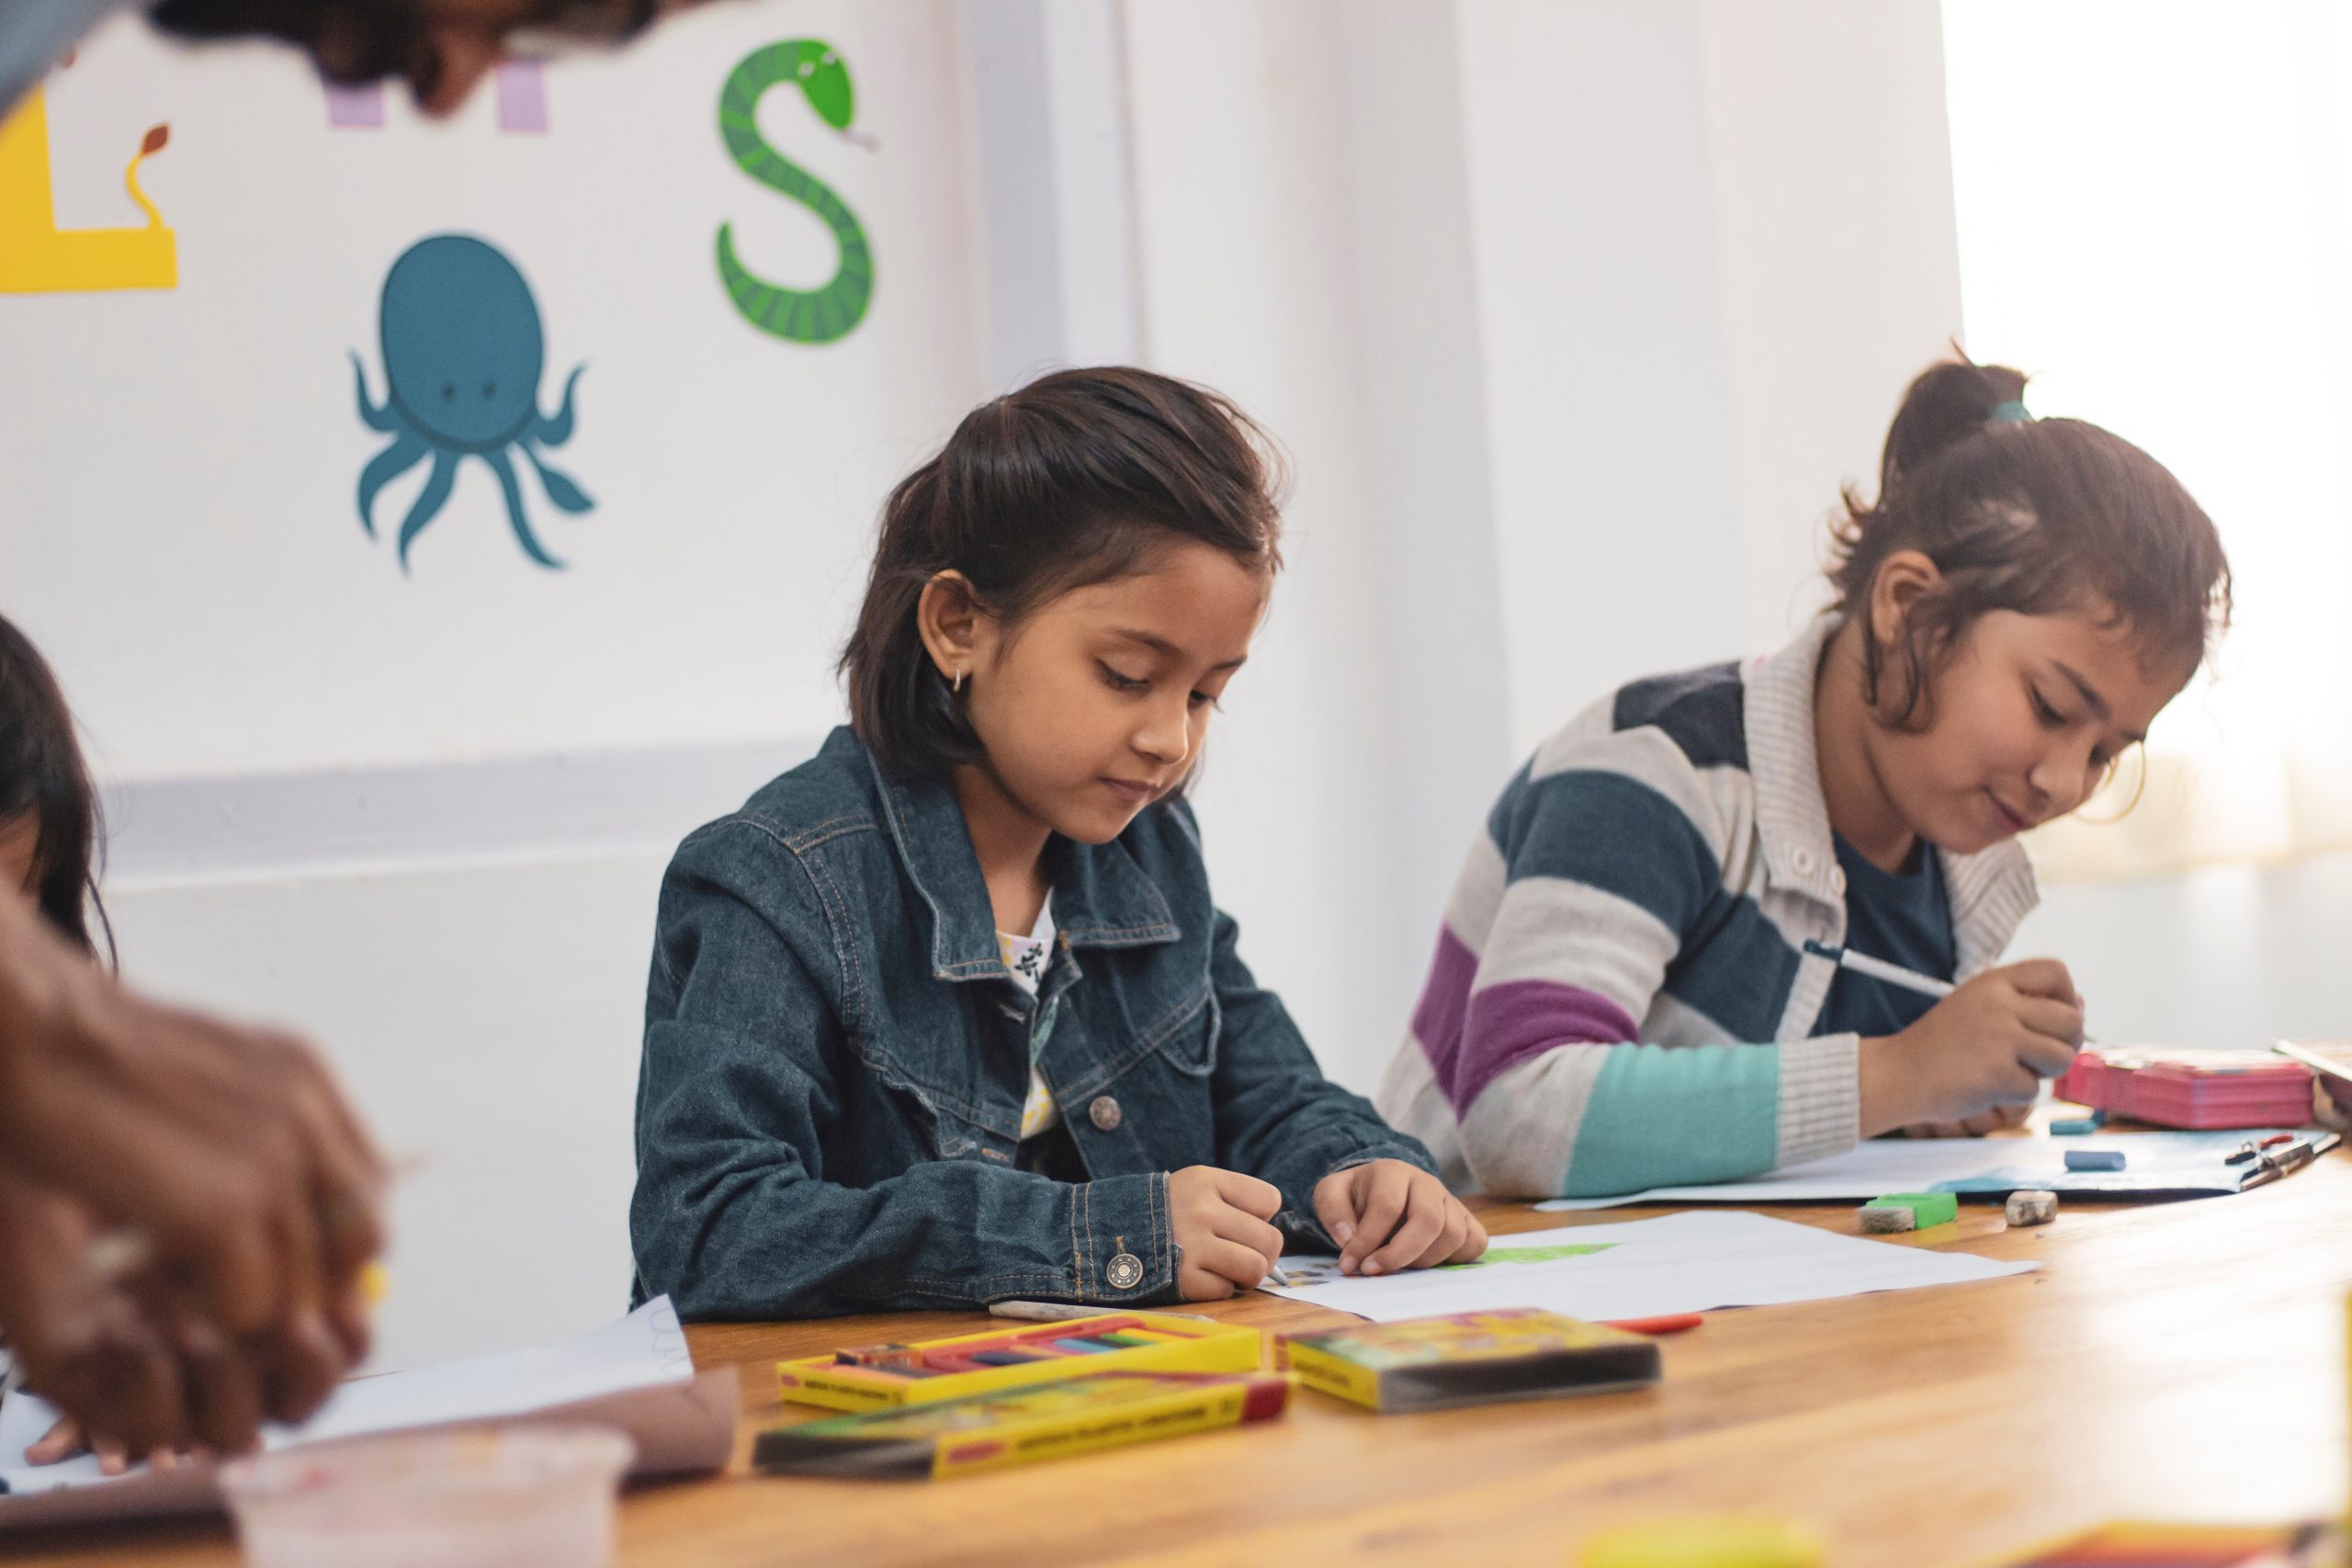 children coloring in class at school